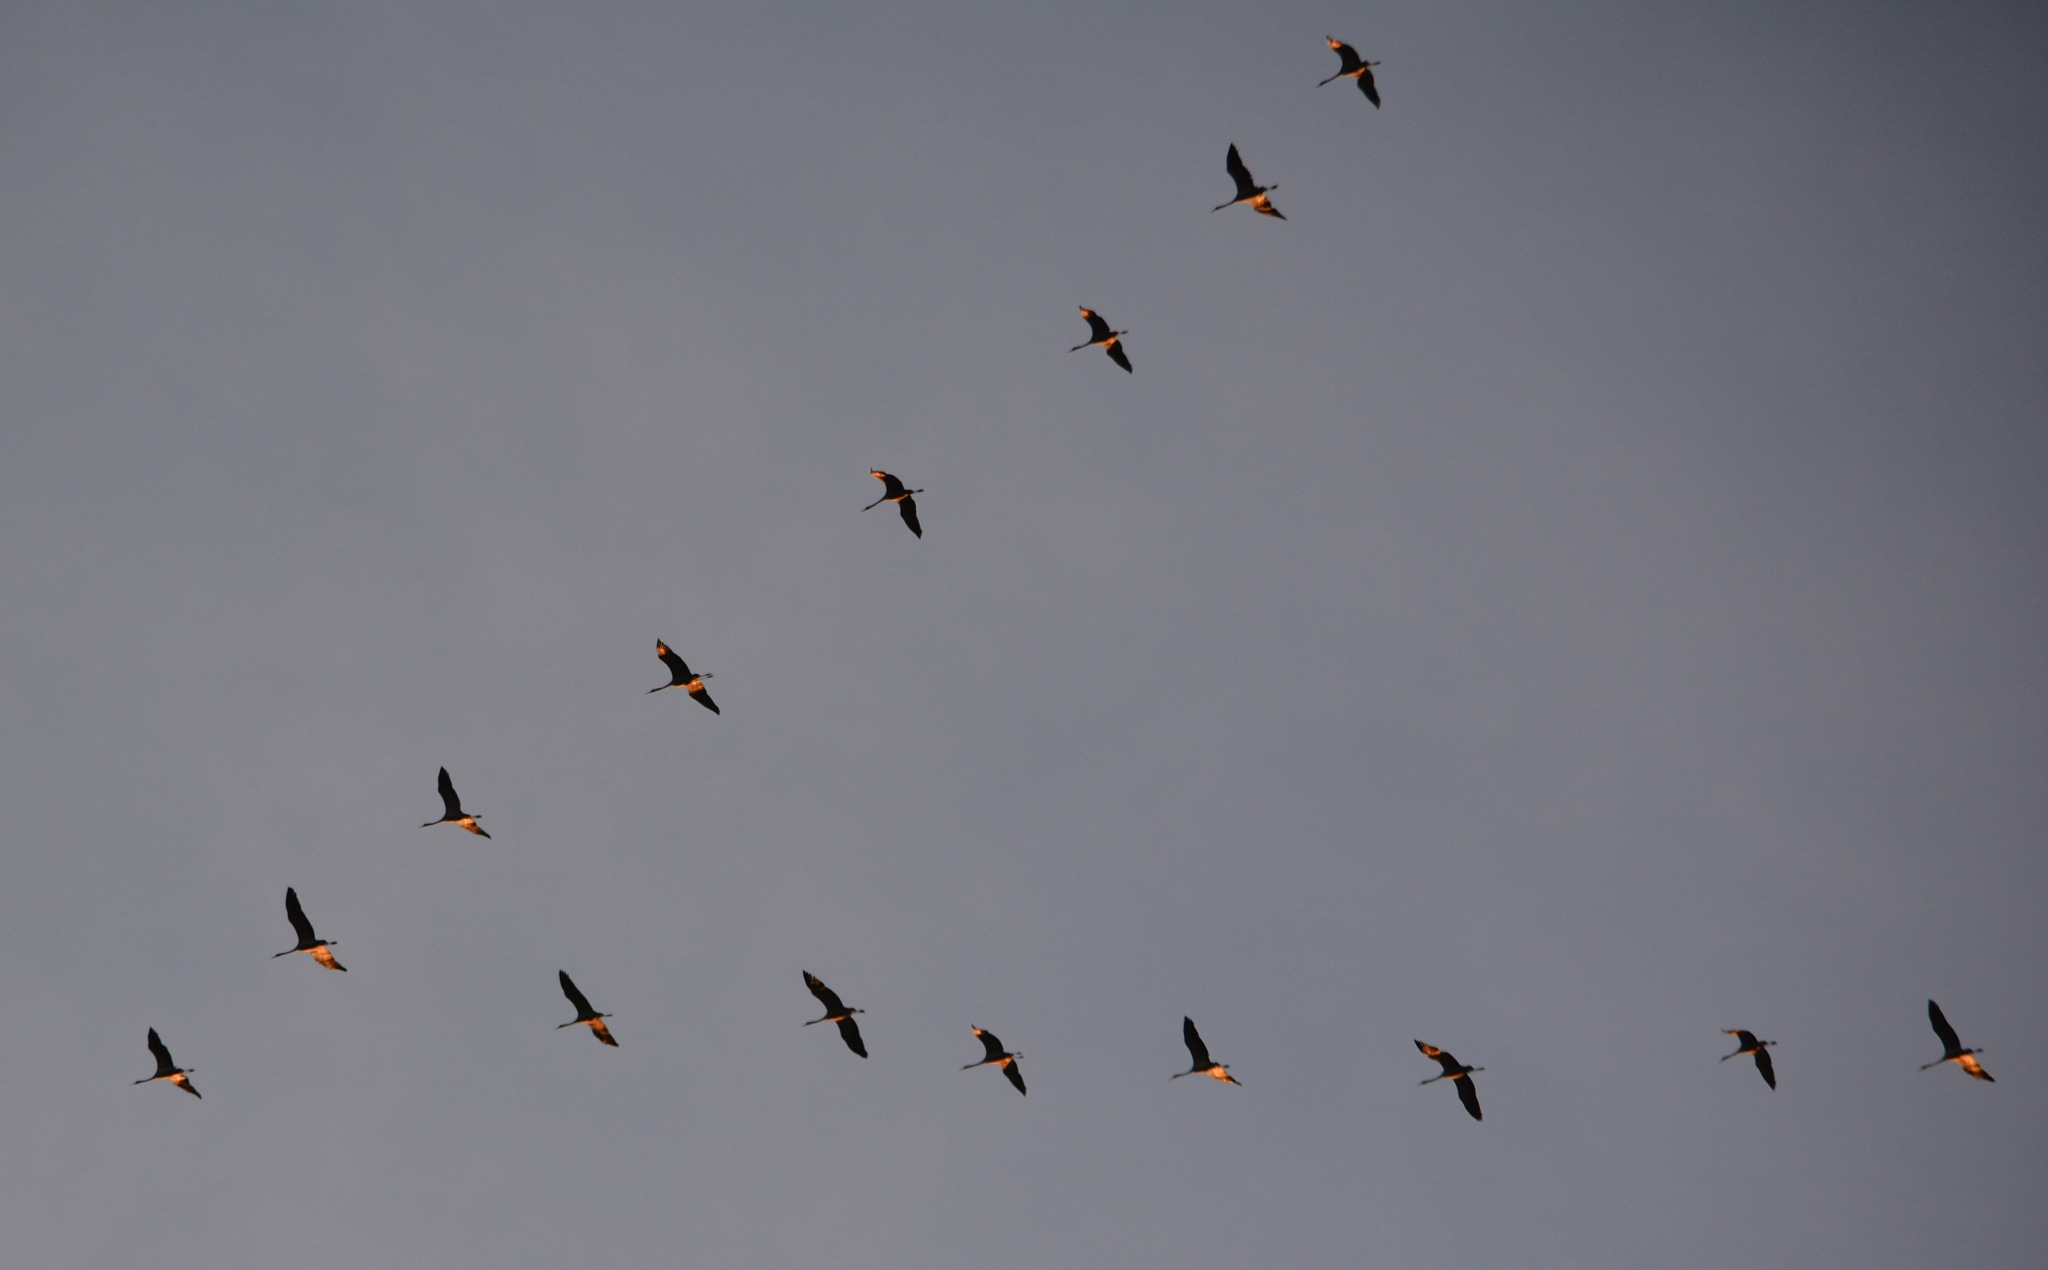 Cranes - Grues heading south! by alison16